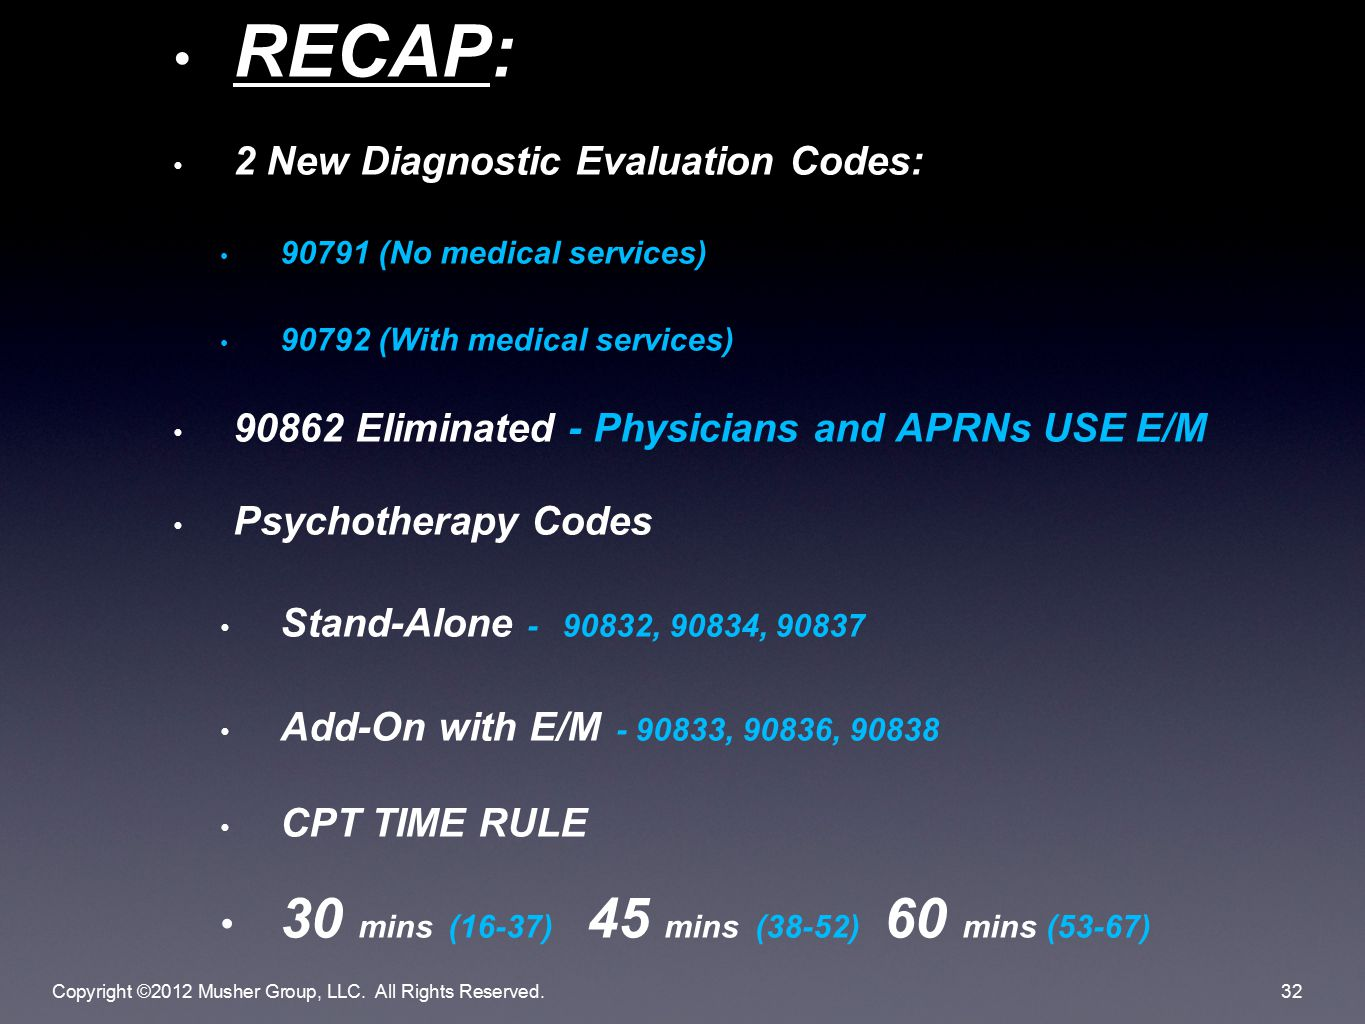 RECAP: 2 New Diagnostic Evaluation Codes: 90791 (No medical services) 90792 (With medical services) 90862 Eliminated - Physicians and APRNs USE E/M Psychotherapy Codes Stand-Alone - 90832, 90834, 90837 Add-On with E/M - 90833, 90836, 90838 CPT TIME RULE 30 mins (16-37) 45 mins (38-52) 60 mins (53-67) Copyright ©2012 Musher Group, LLC.